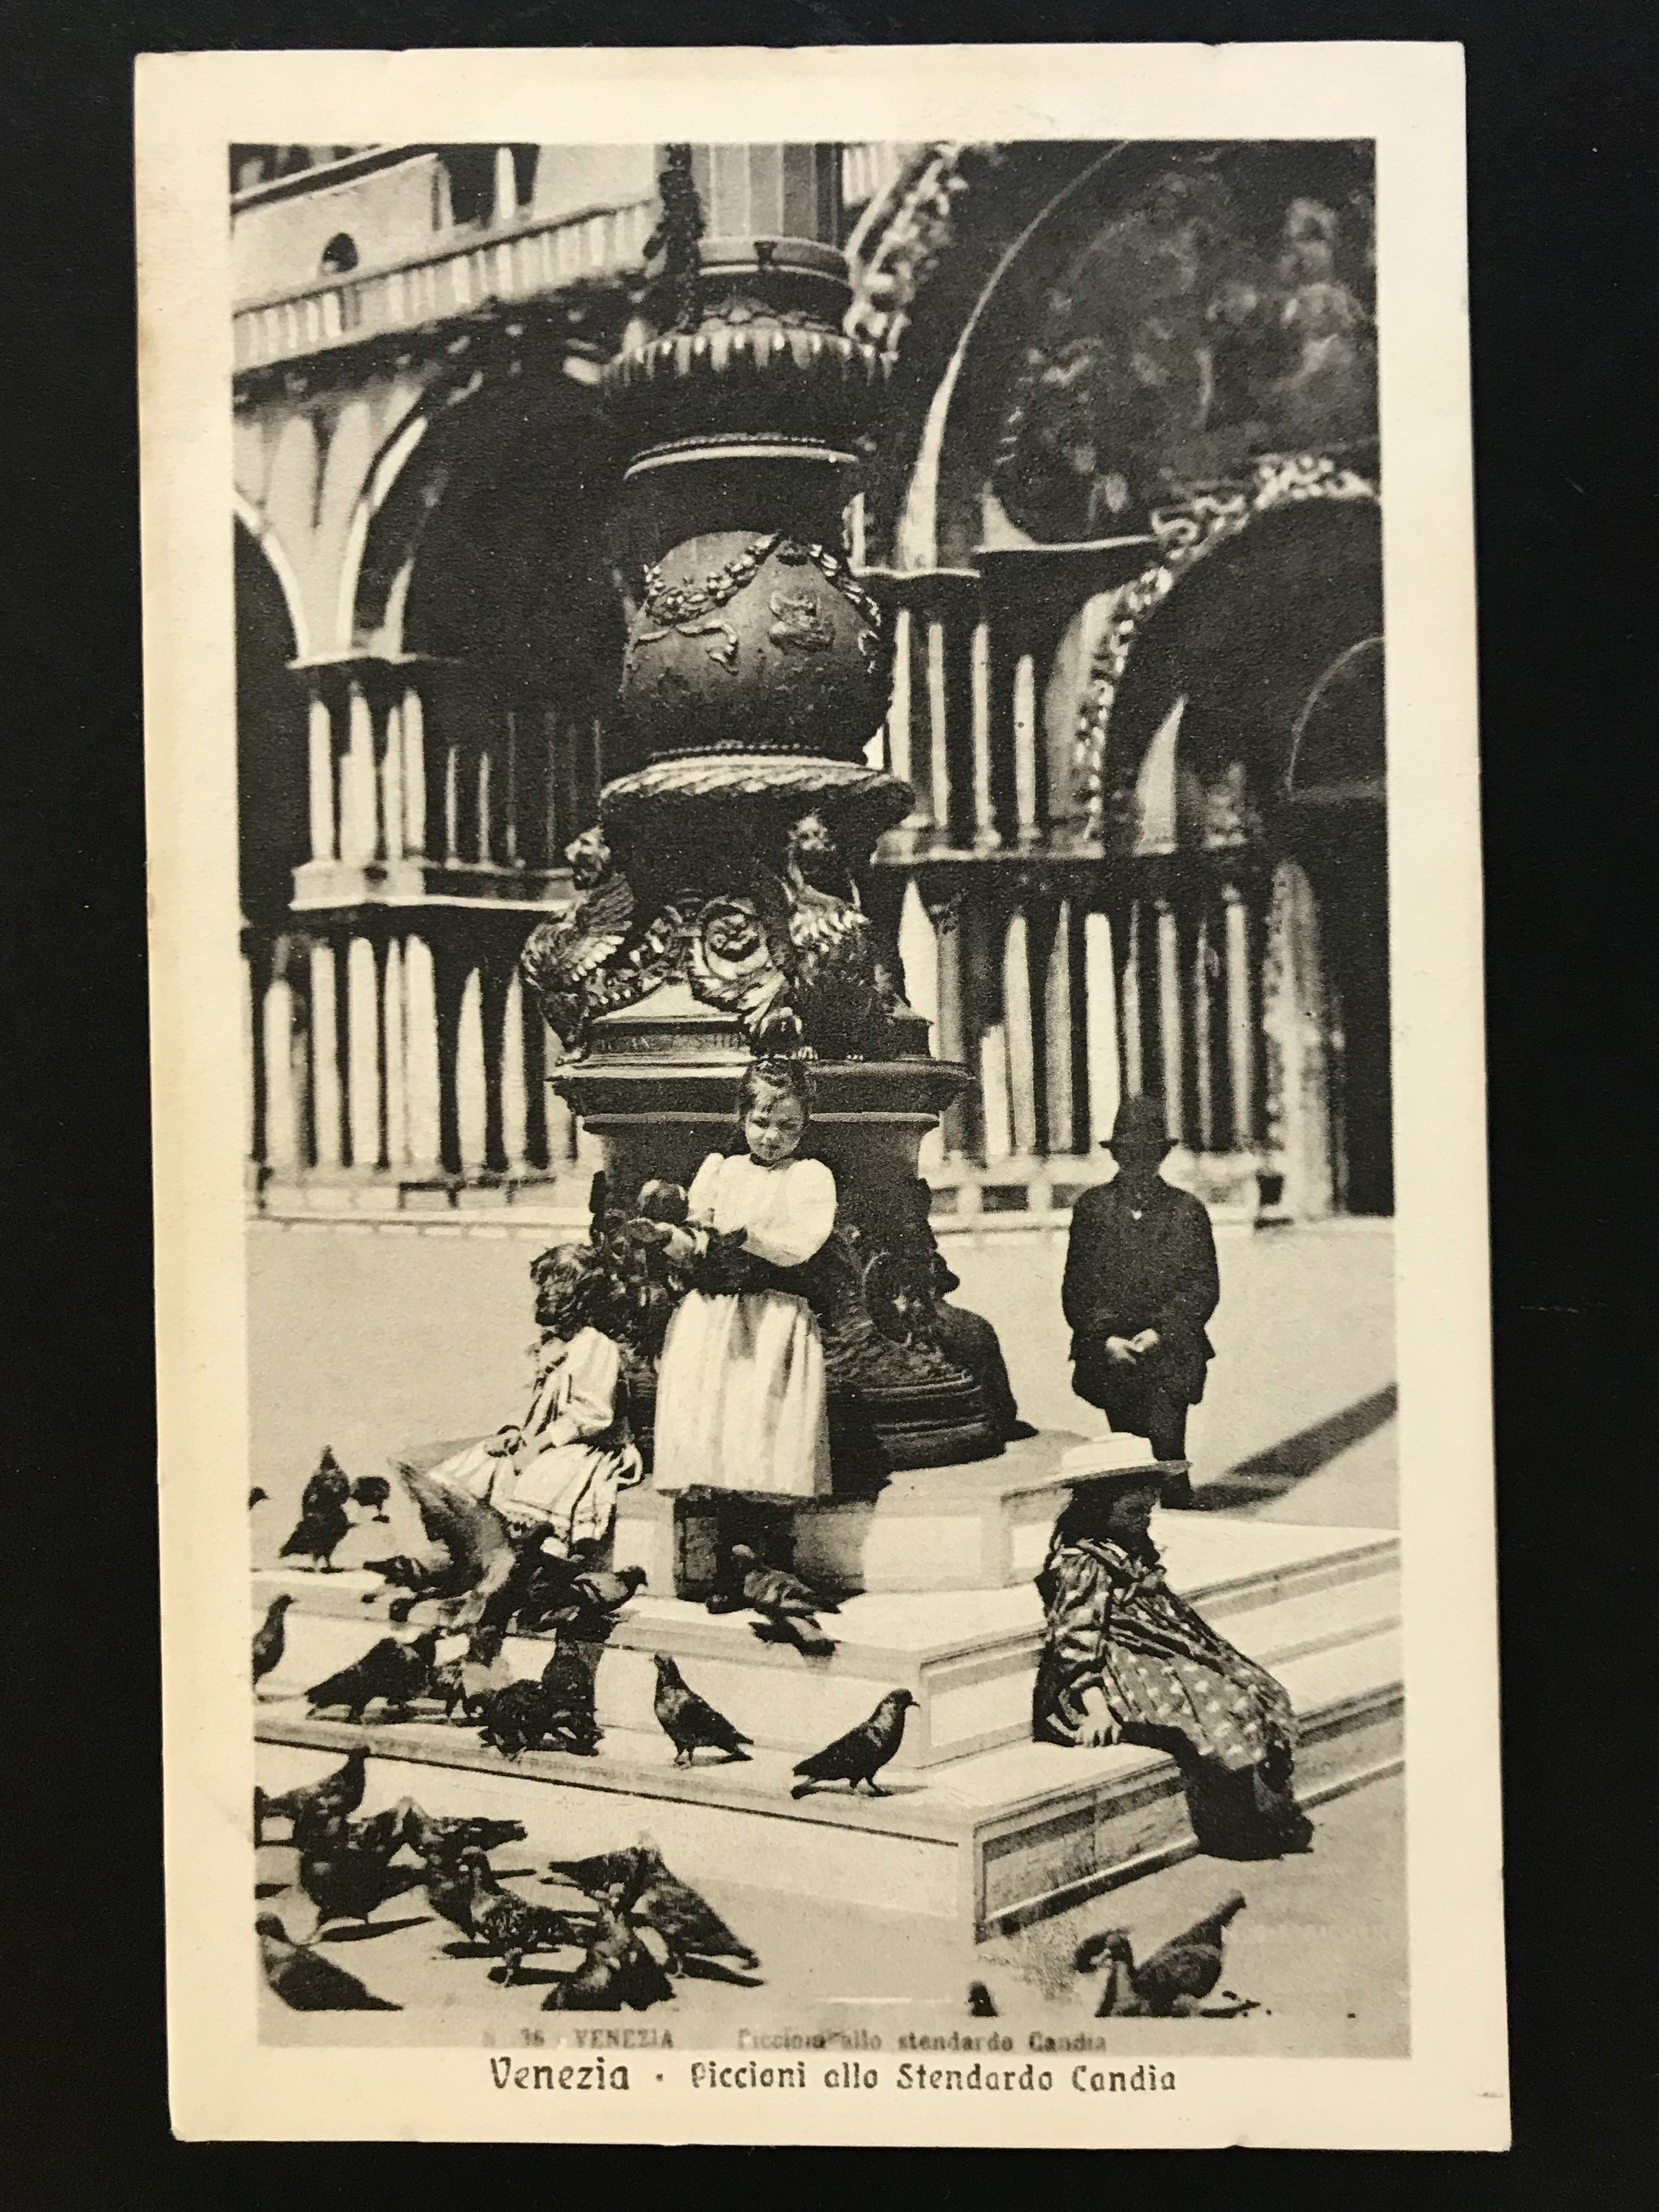 SELECTION OF VENICE RELATED POSTCARDS - Image 25 of 53